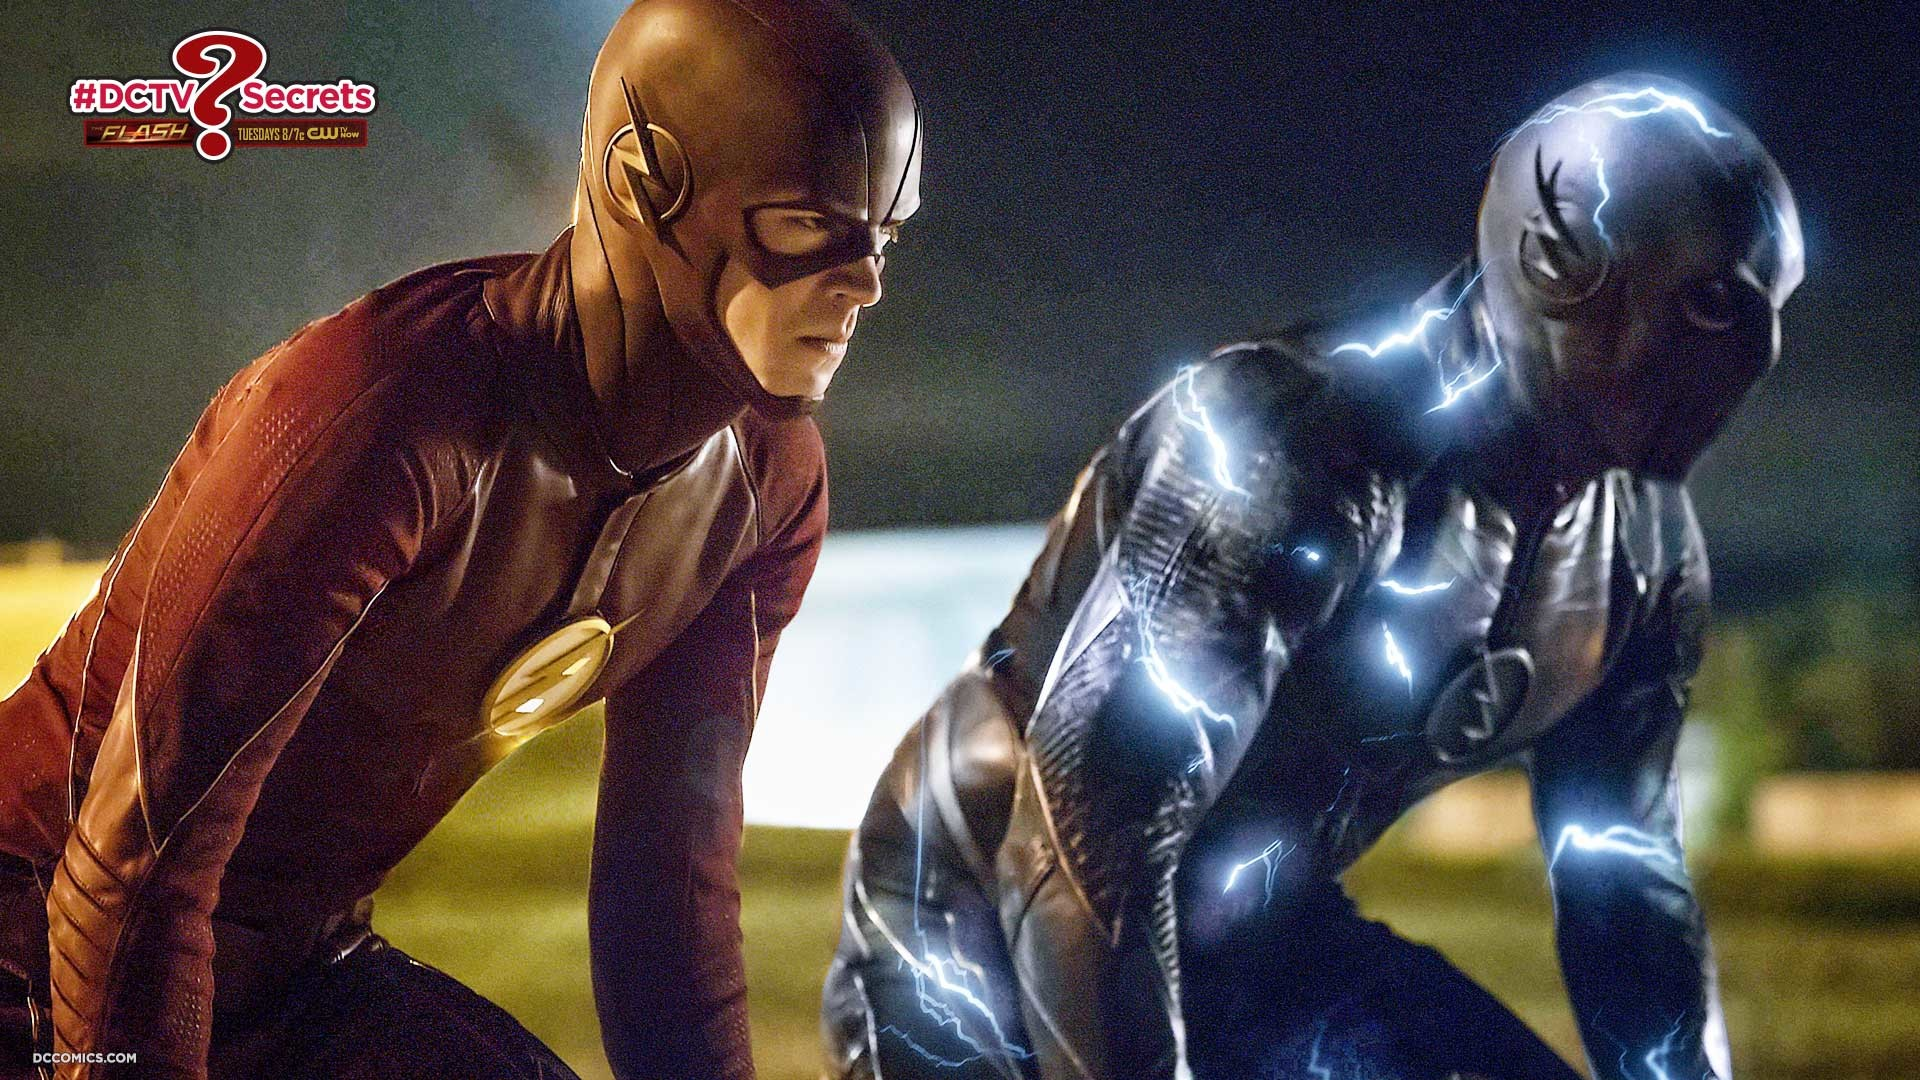 The Flash HD Images 4 #TheFlashHDImages #TheFlash #tvseries #wallpapers